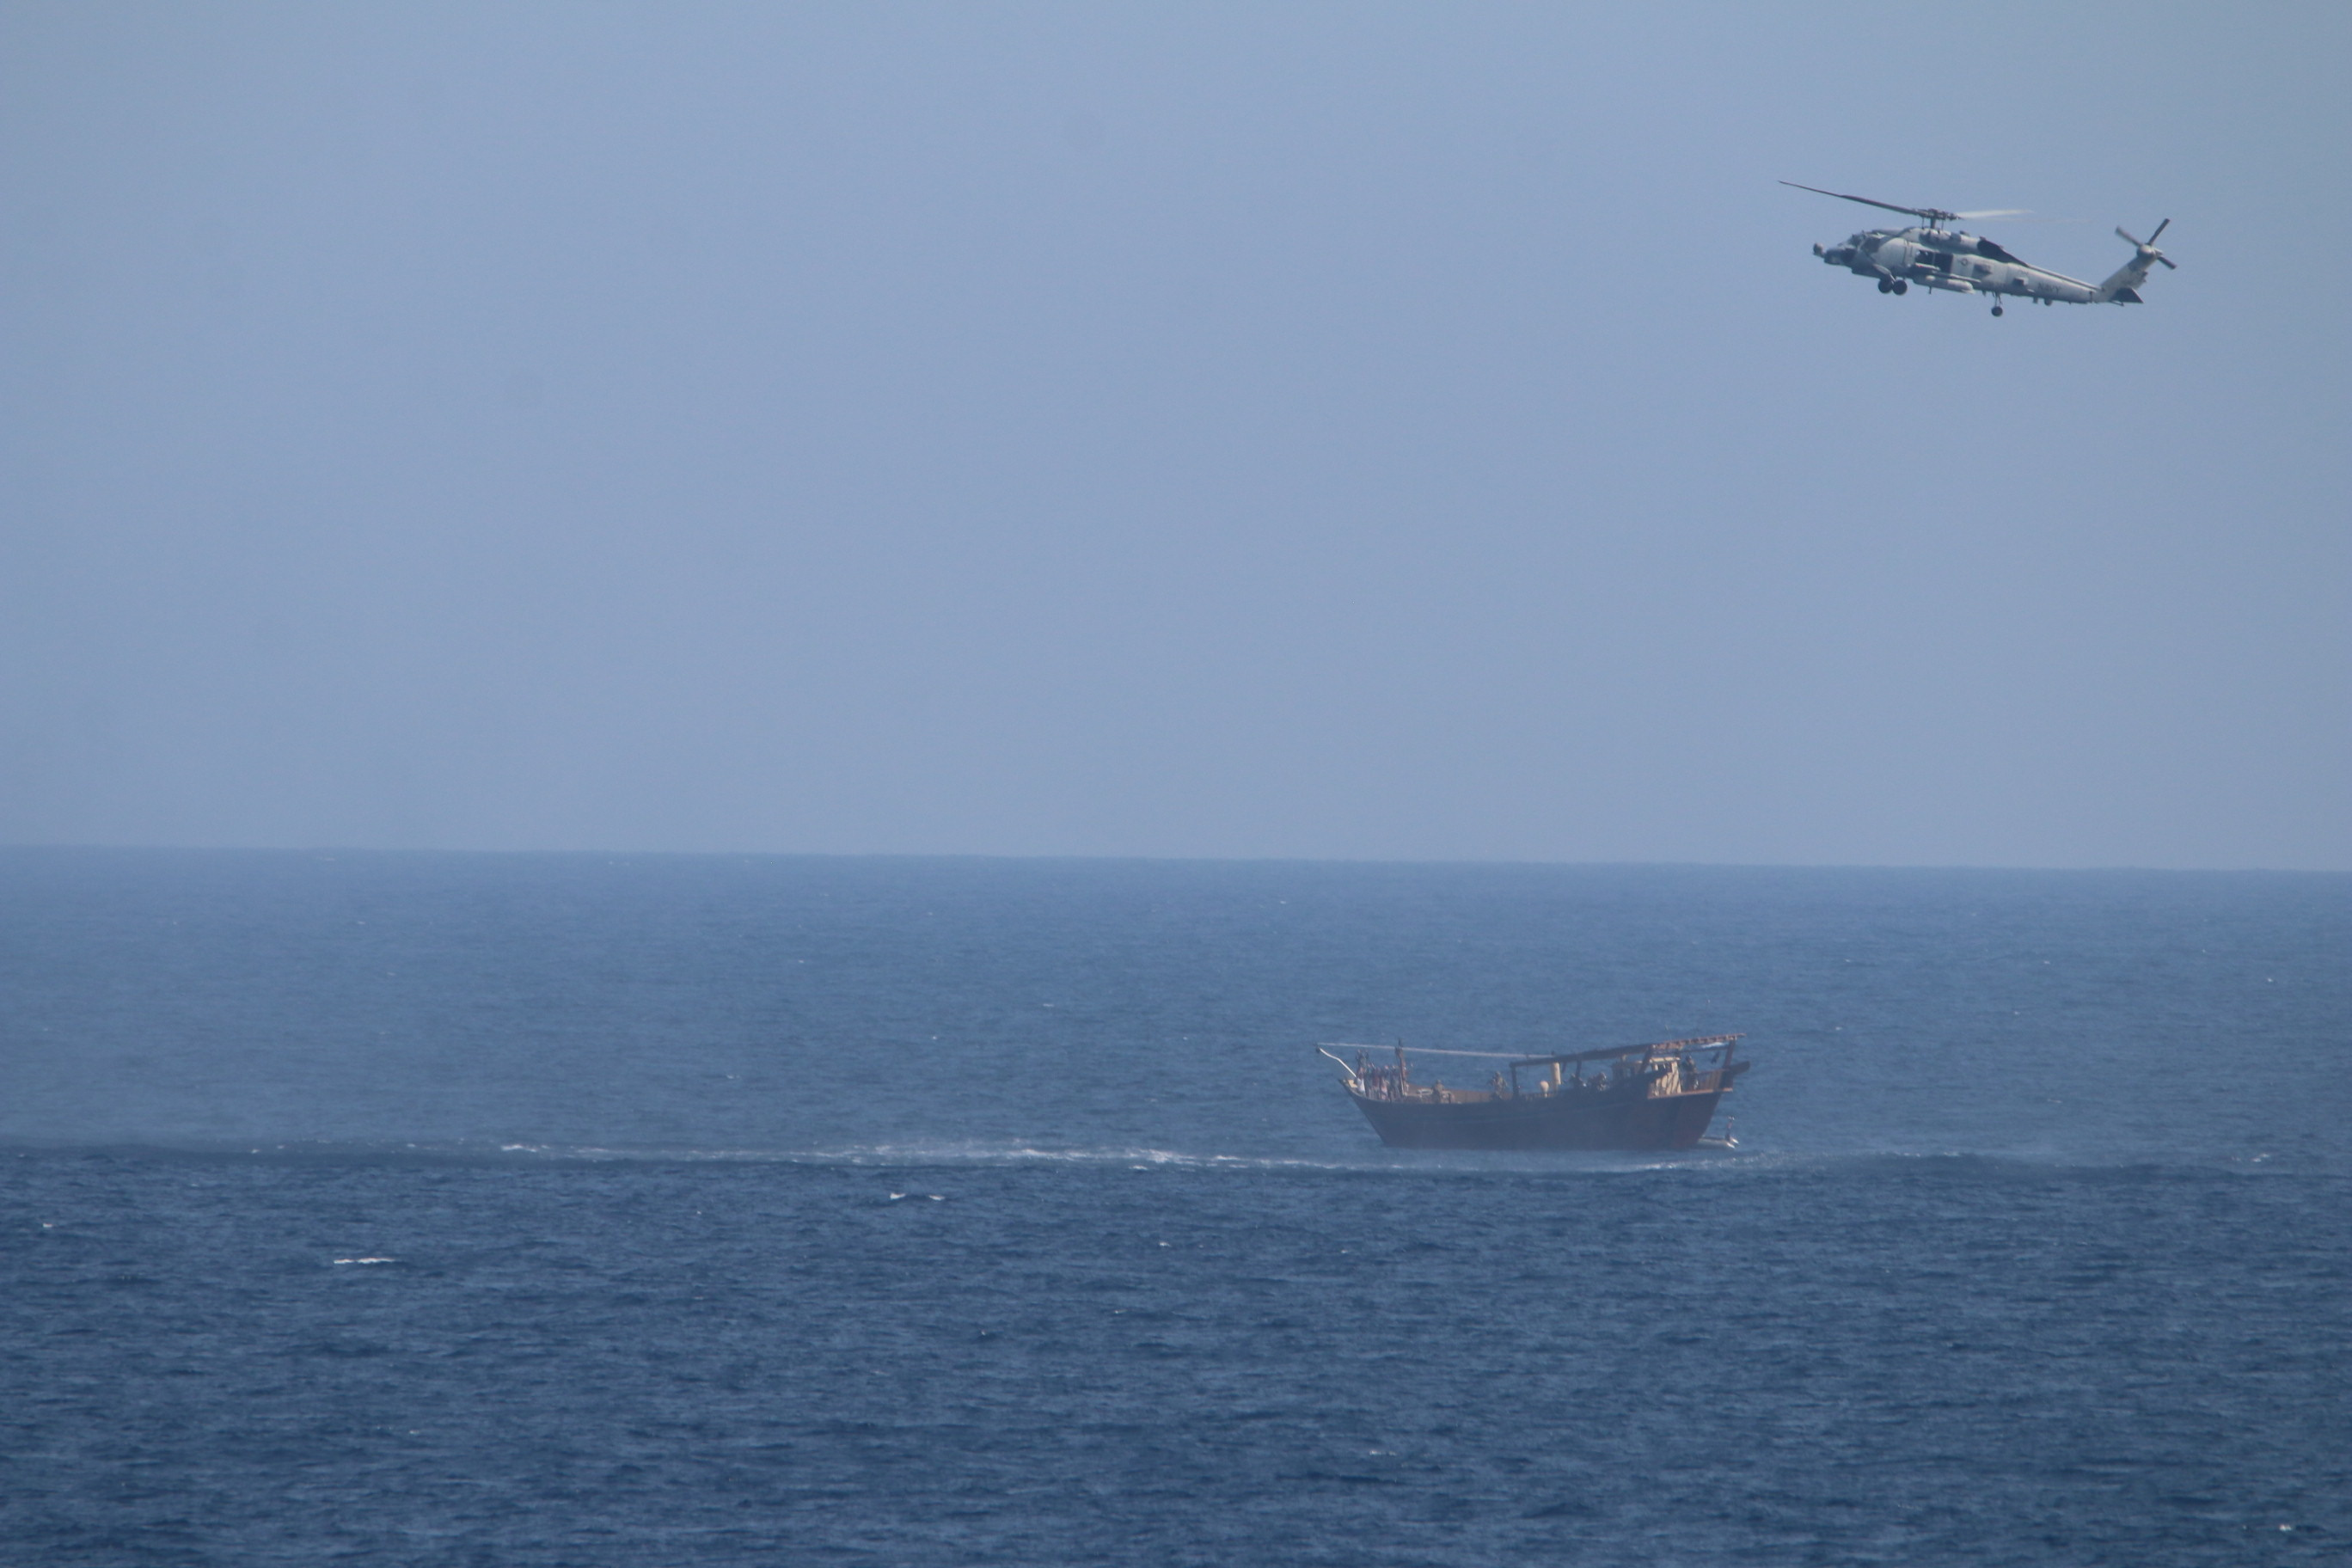 An SH-60 Seahawk helicopter assigned to the United States guided-missile cruiser USS Monterey (CG 61)(not shown) flies above a stateless dhow interdicted with a shipment of illicit weapons in international waters of the North Arabian Sea in this picture taken on May 6, 2021 and released by U.S.Navy on May 9, 2021. U.S. Navy Forces Central Command/U.S. Navy/Handout via REUTERS